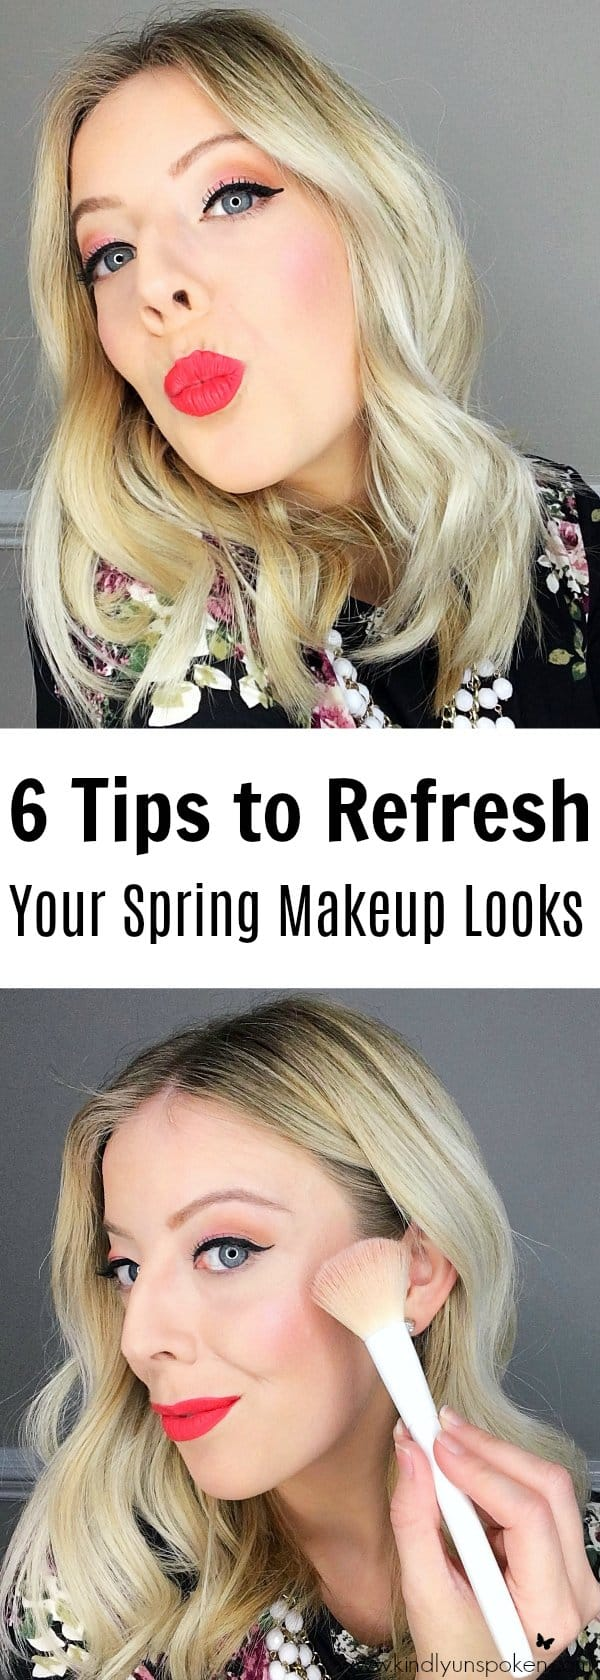 Spring is just around the corner, which means it's time to refresh your makeup collection! Today I'm sharing 6 Tips to Refresh Your Spring Makeup Looks plus I'm including a gorgeous, fresh makeup look featuring some of spring's must-have products and hottest trends! From bright lip colors,peach eyeshadows, to sun-kissed gold skin, it's time to addsome color and freshen up your look for spring!